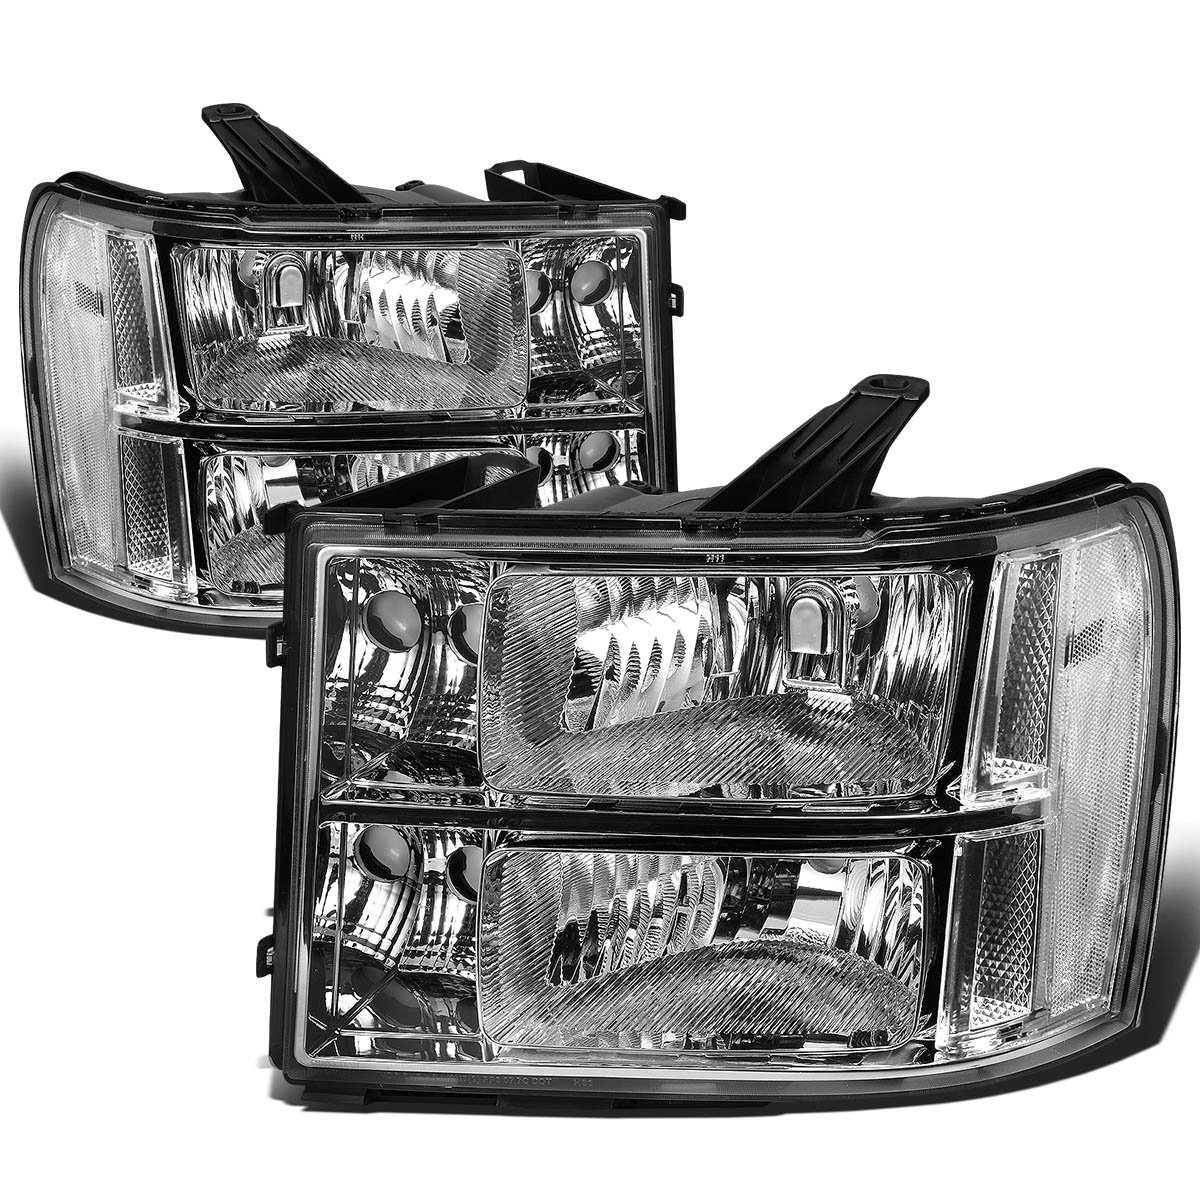 For GMC Sierra GMT 900 Pair of Chrome Housing Clear Corner Headlight Replacement Auto Dynasty